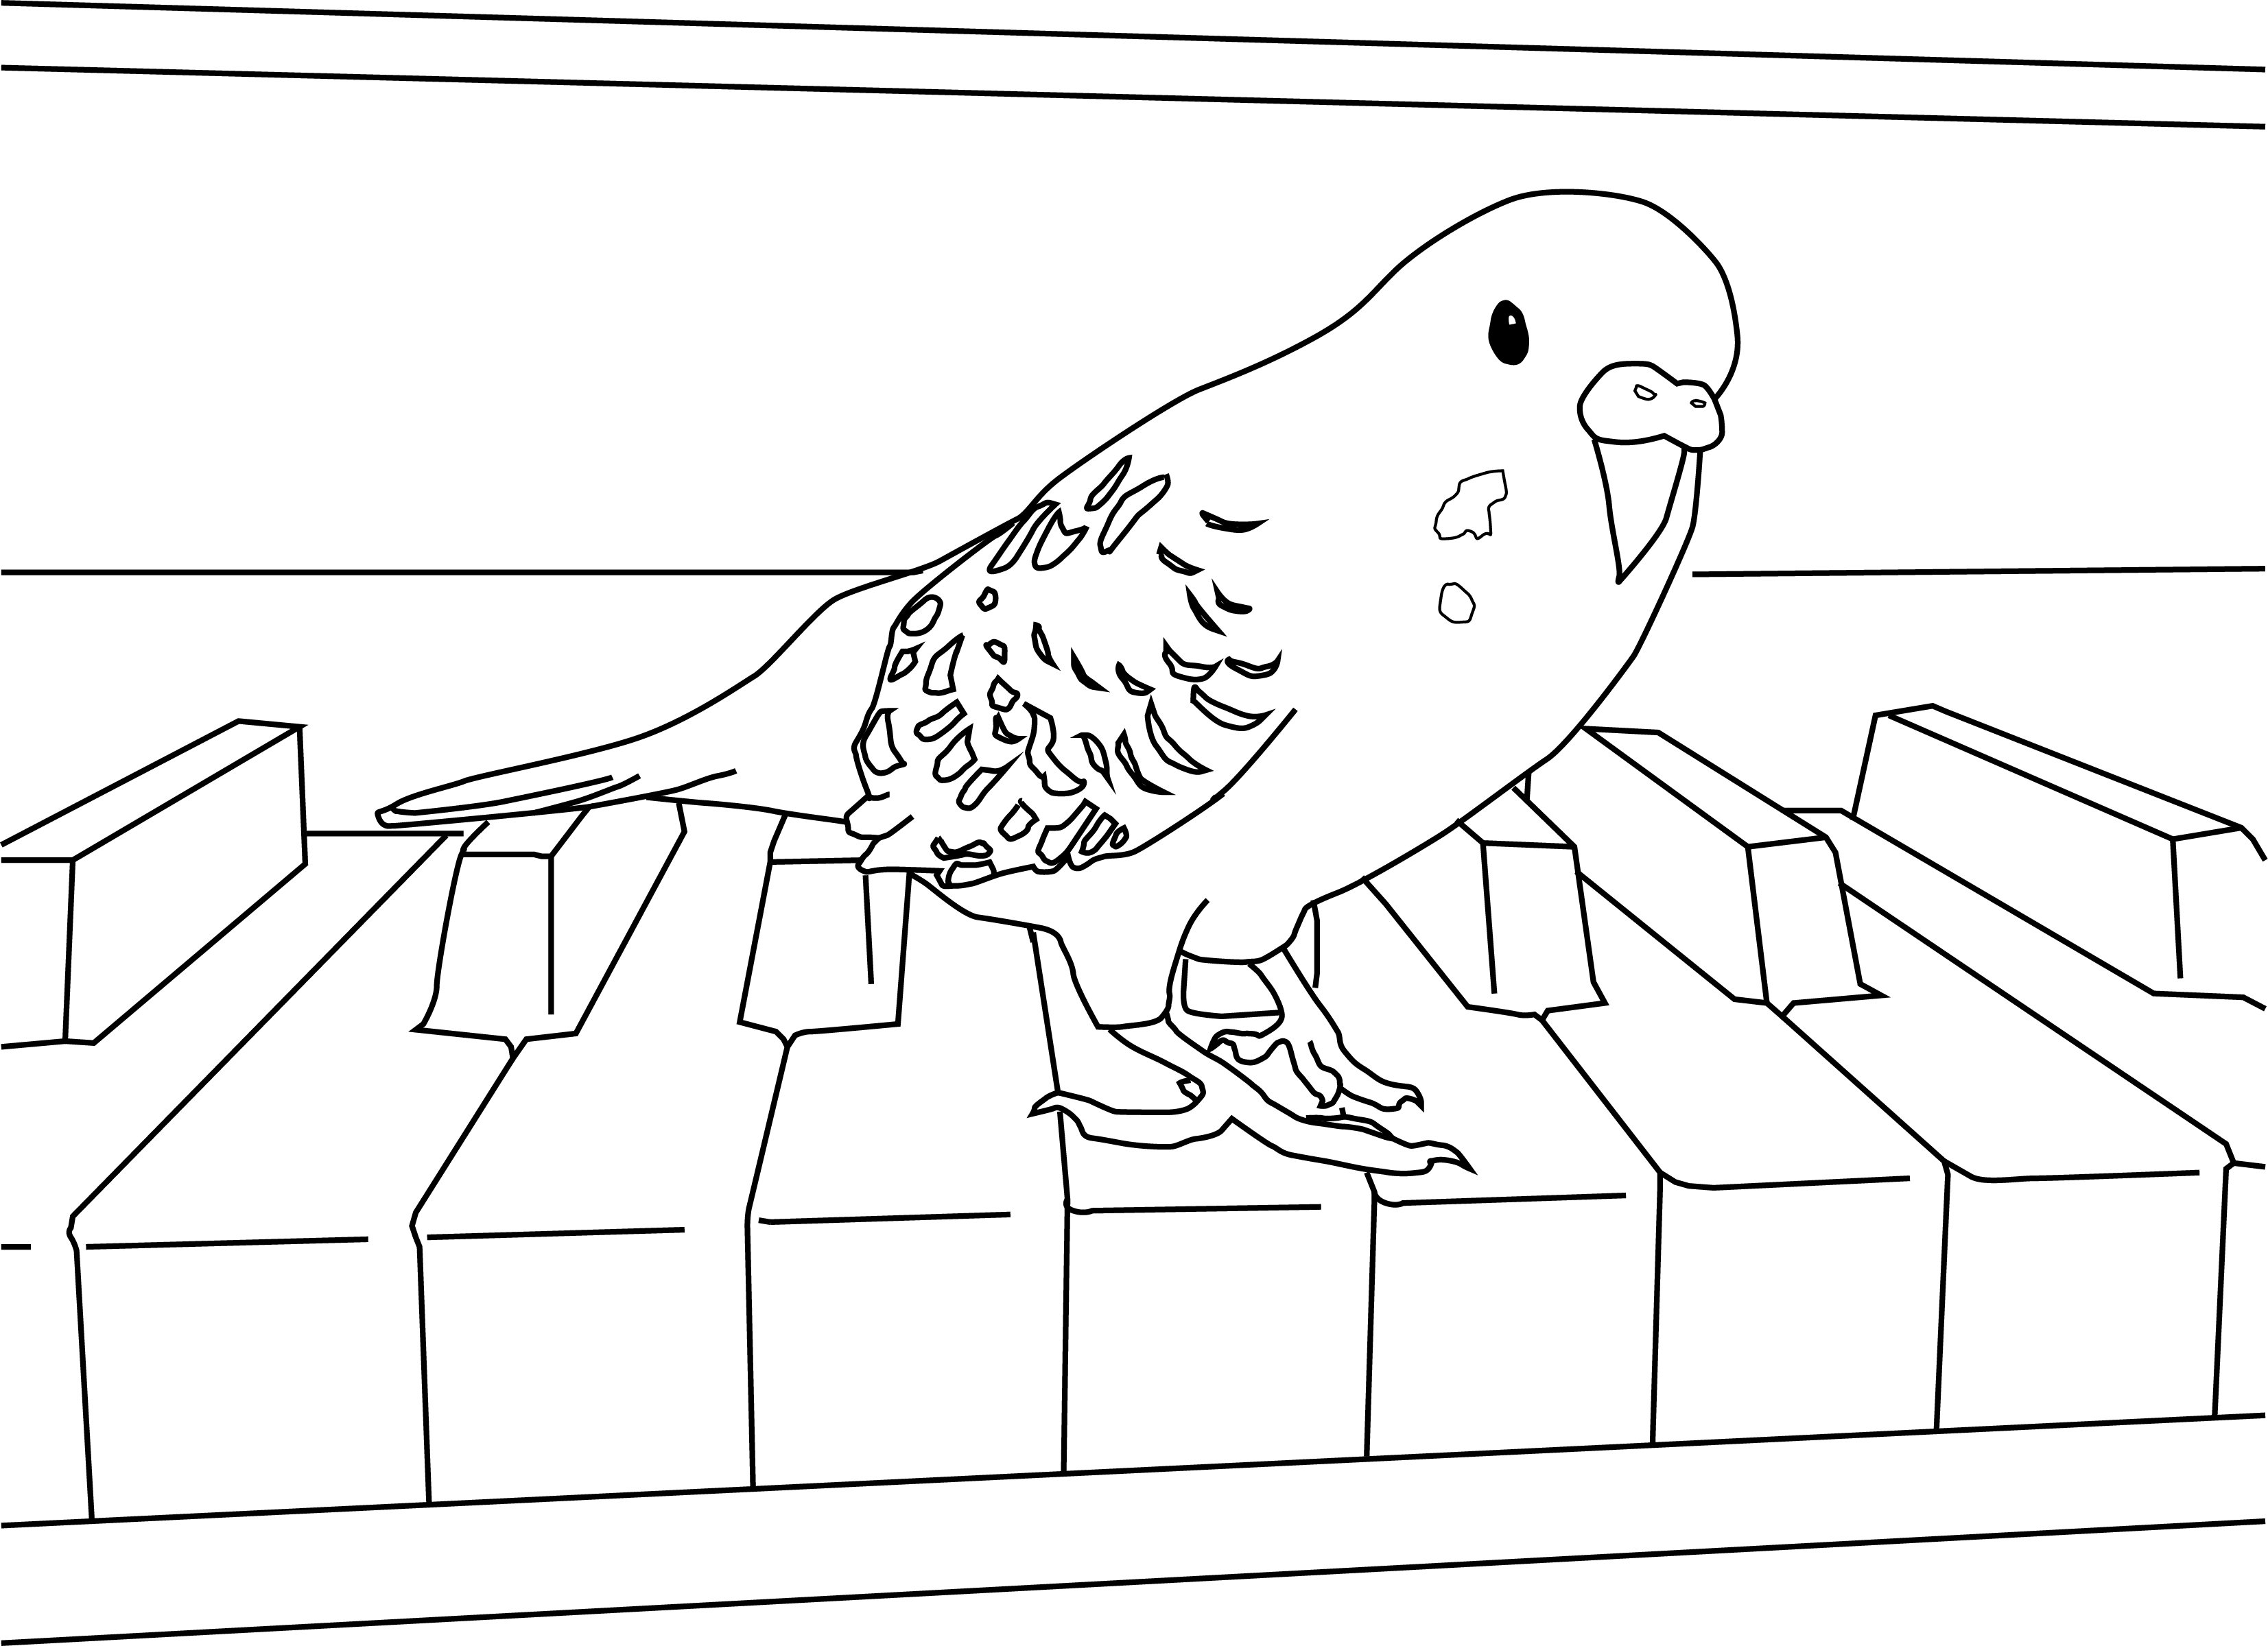 Parakeet coloring #13, Download drawings